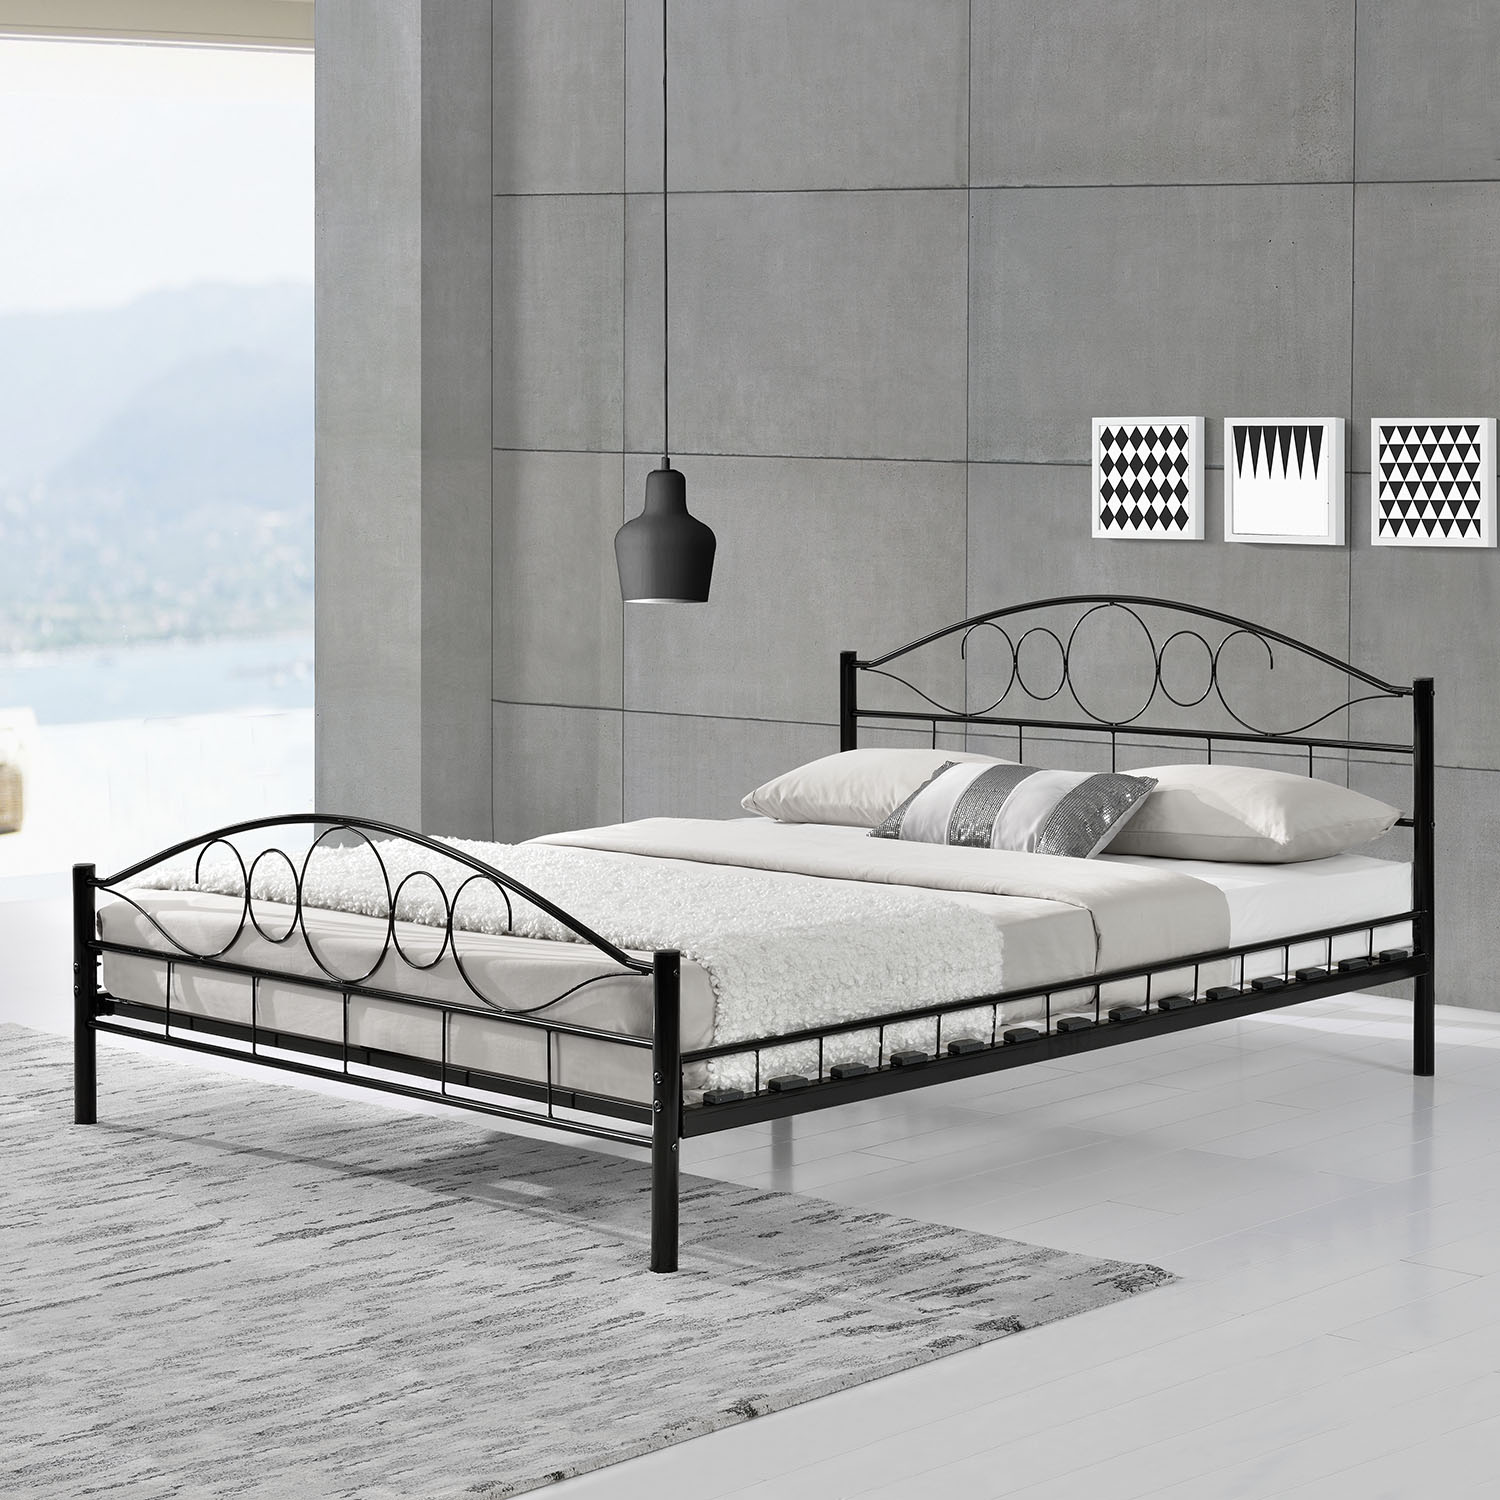 metallbett bettgestell doppelbett bettrahmen mit lattenrost metall bett neu ebay. Black Bedroom Furniture Sets. Home Design Ideas